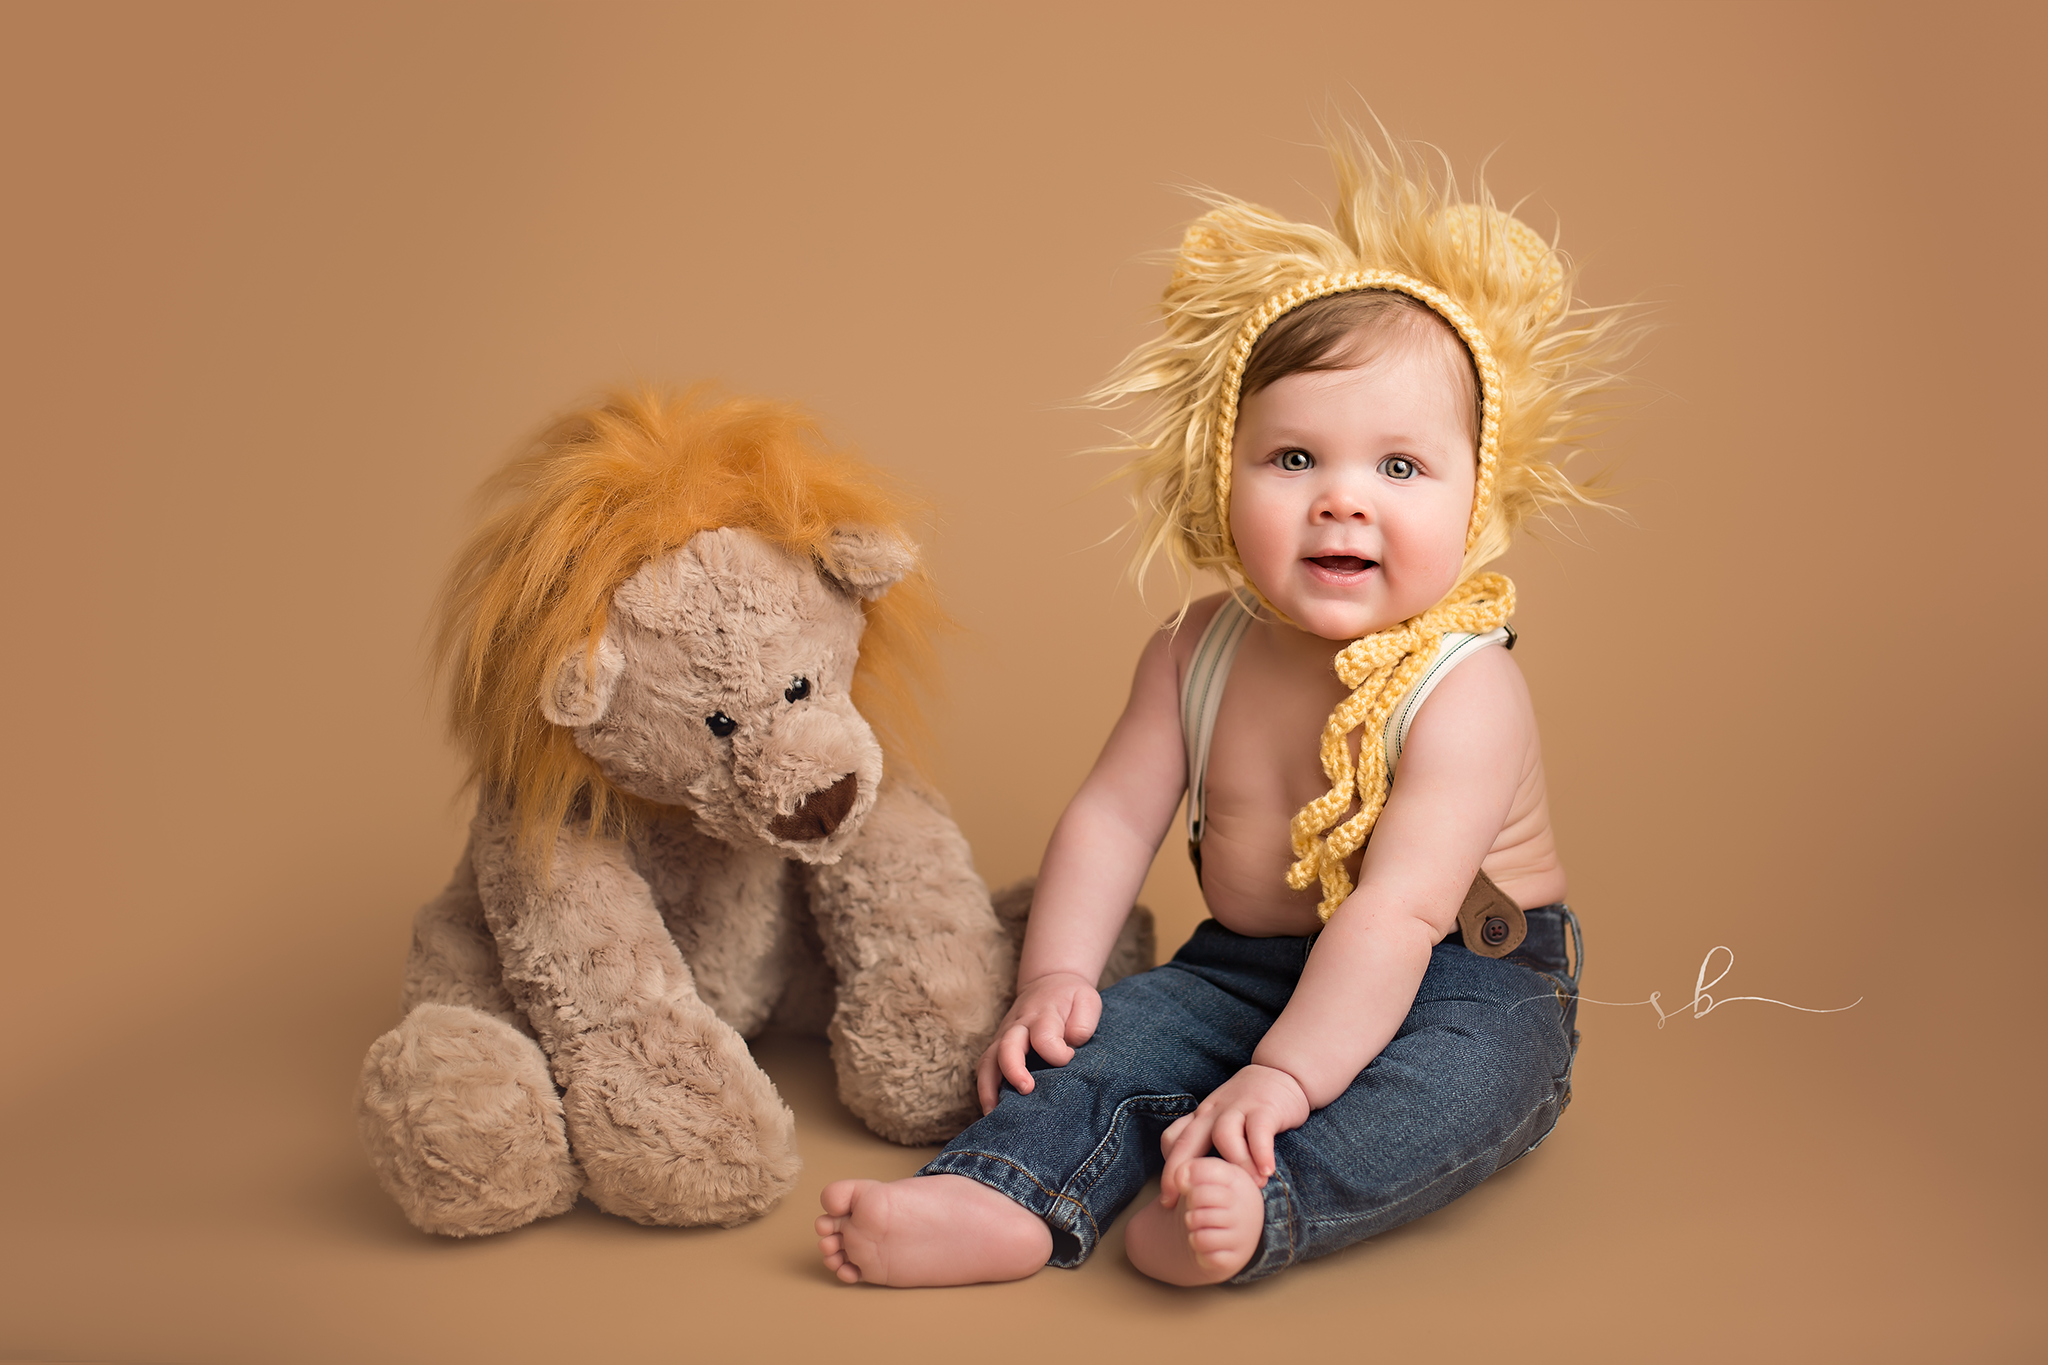 This lion is his favorite <3